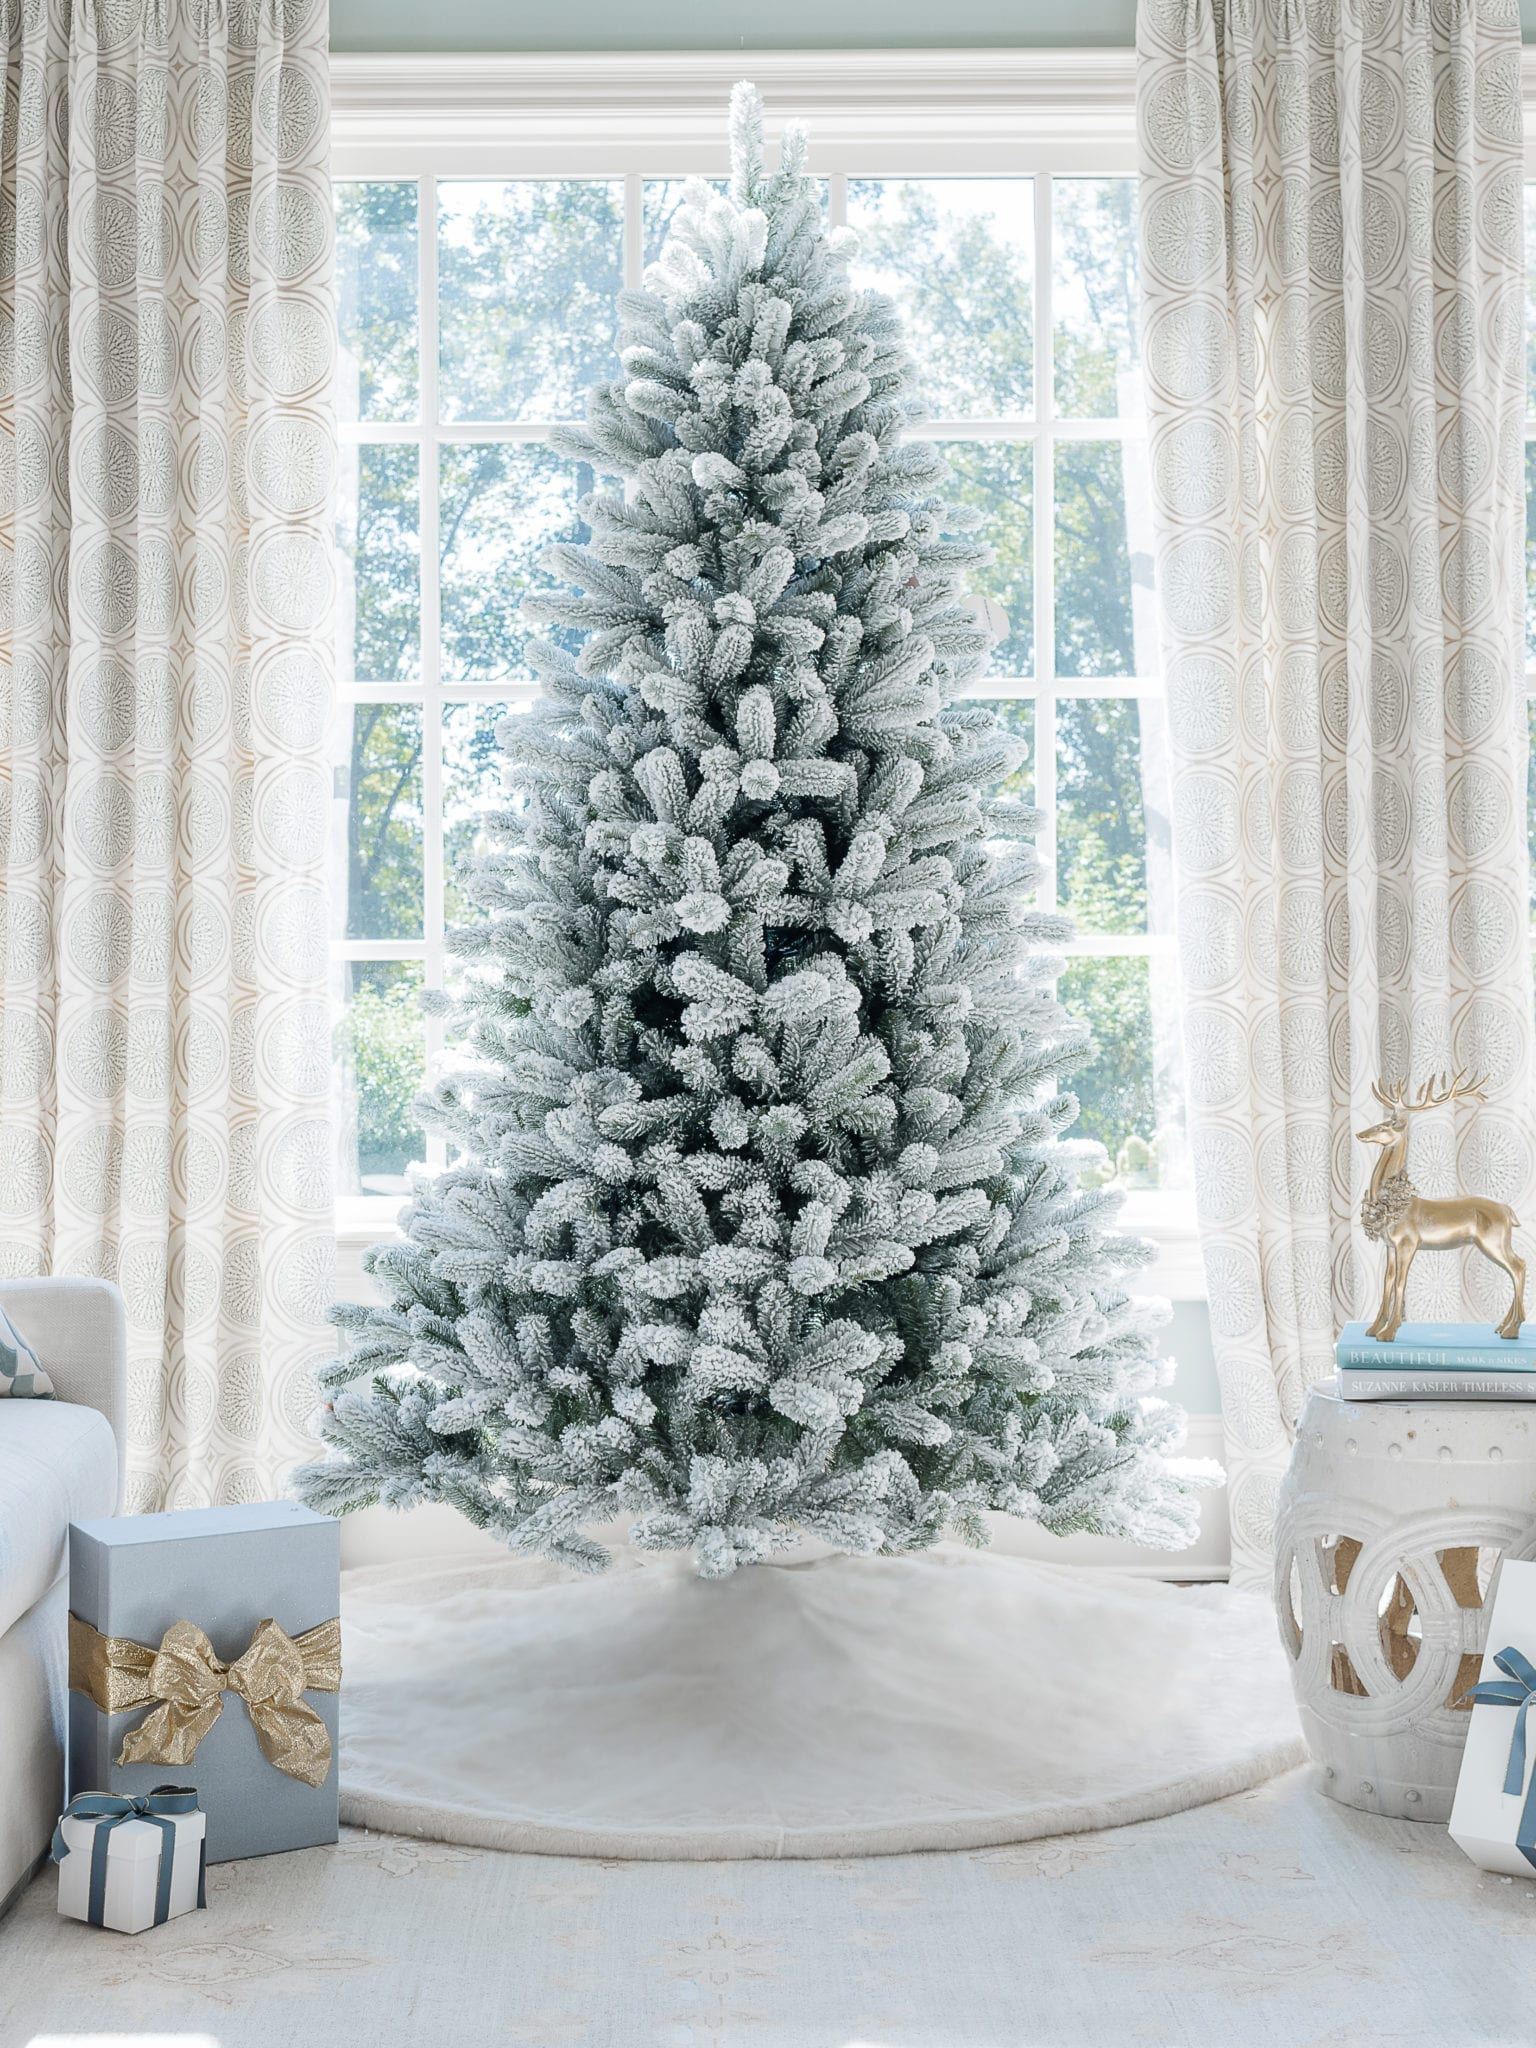 What's the big difference? Want the perfect holiday flocked Christmas tree? I've seen every King of Christmas flocked Christmas tree & can help find your perfect pre flocked tree! Want a simple flocked Christmas tree, an unlit flocked artificial tree, slim, queen flocked tree, or small flocked tree? Let's dive in!